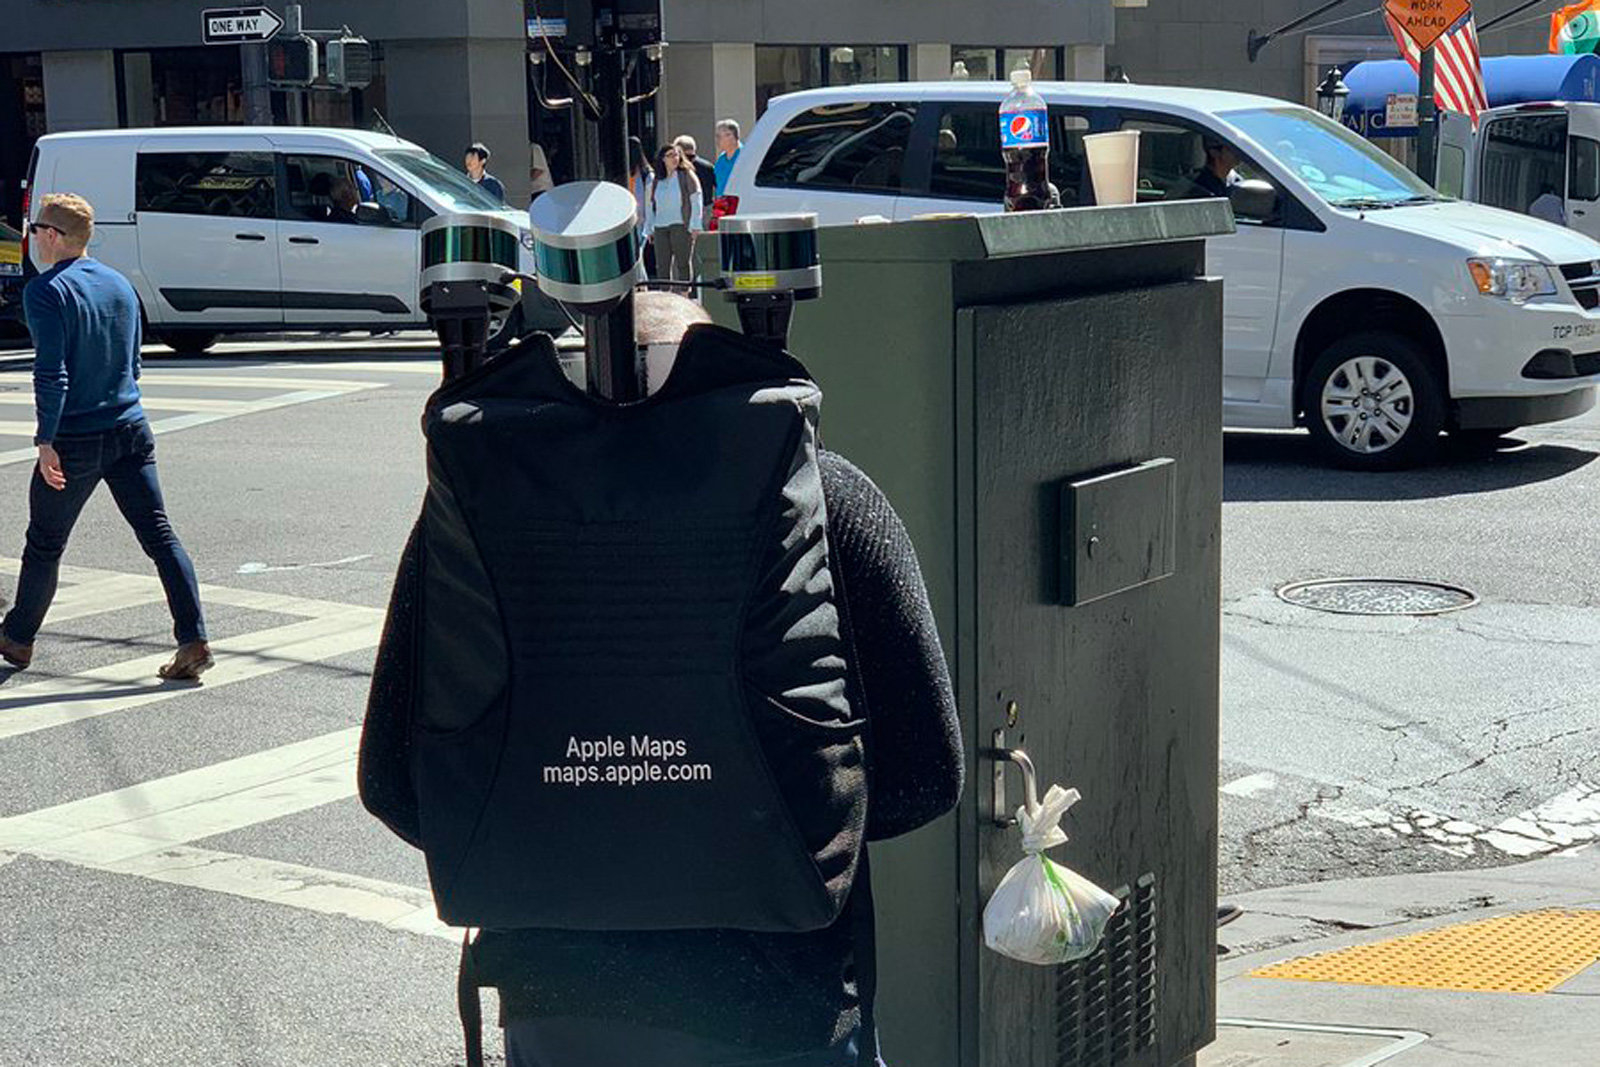 Apple uses special backpacks to collect map data